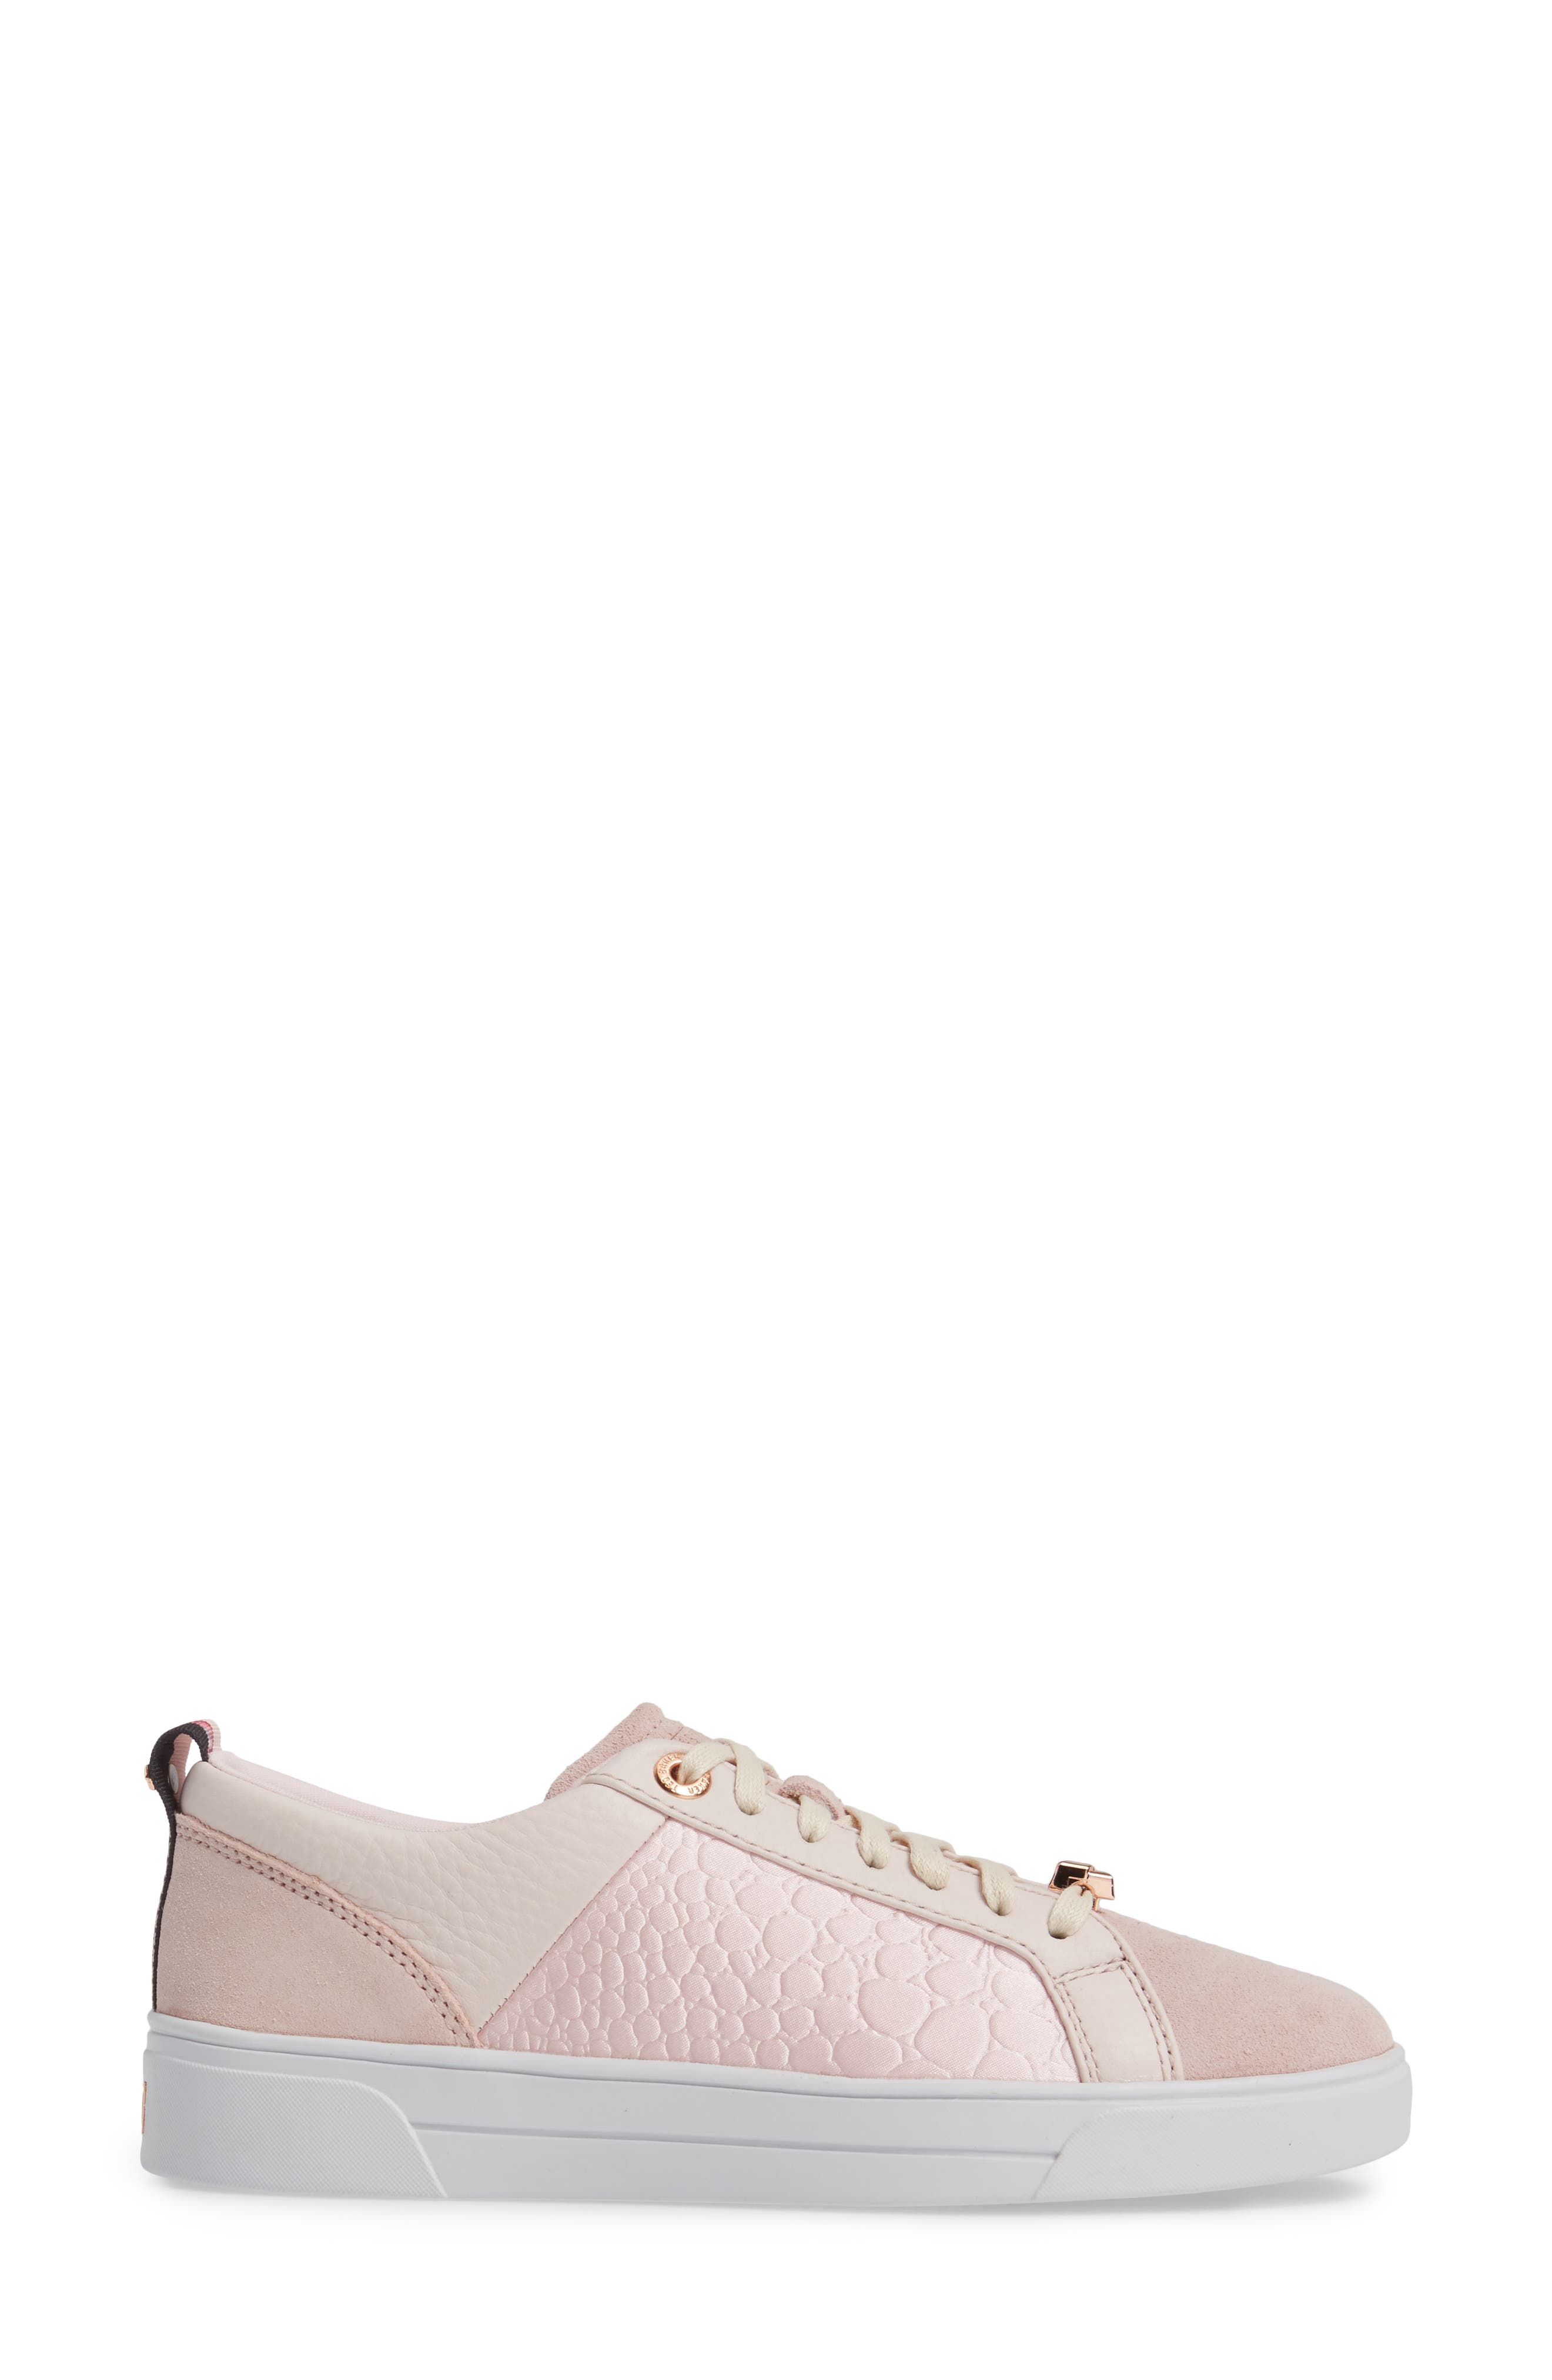 Kulei Sneaker,                             Alternate thumbnail 3, color,                             Light Pink Leather